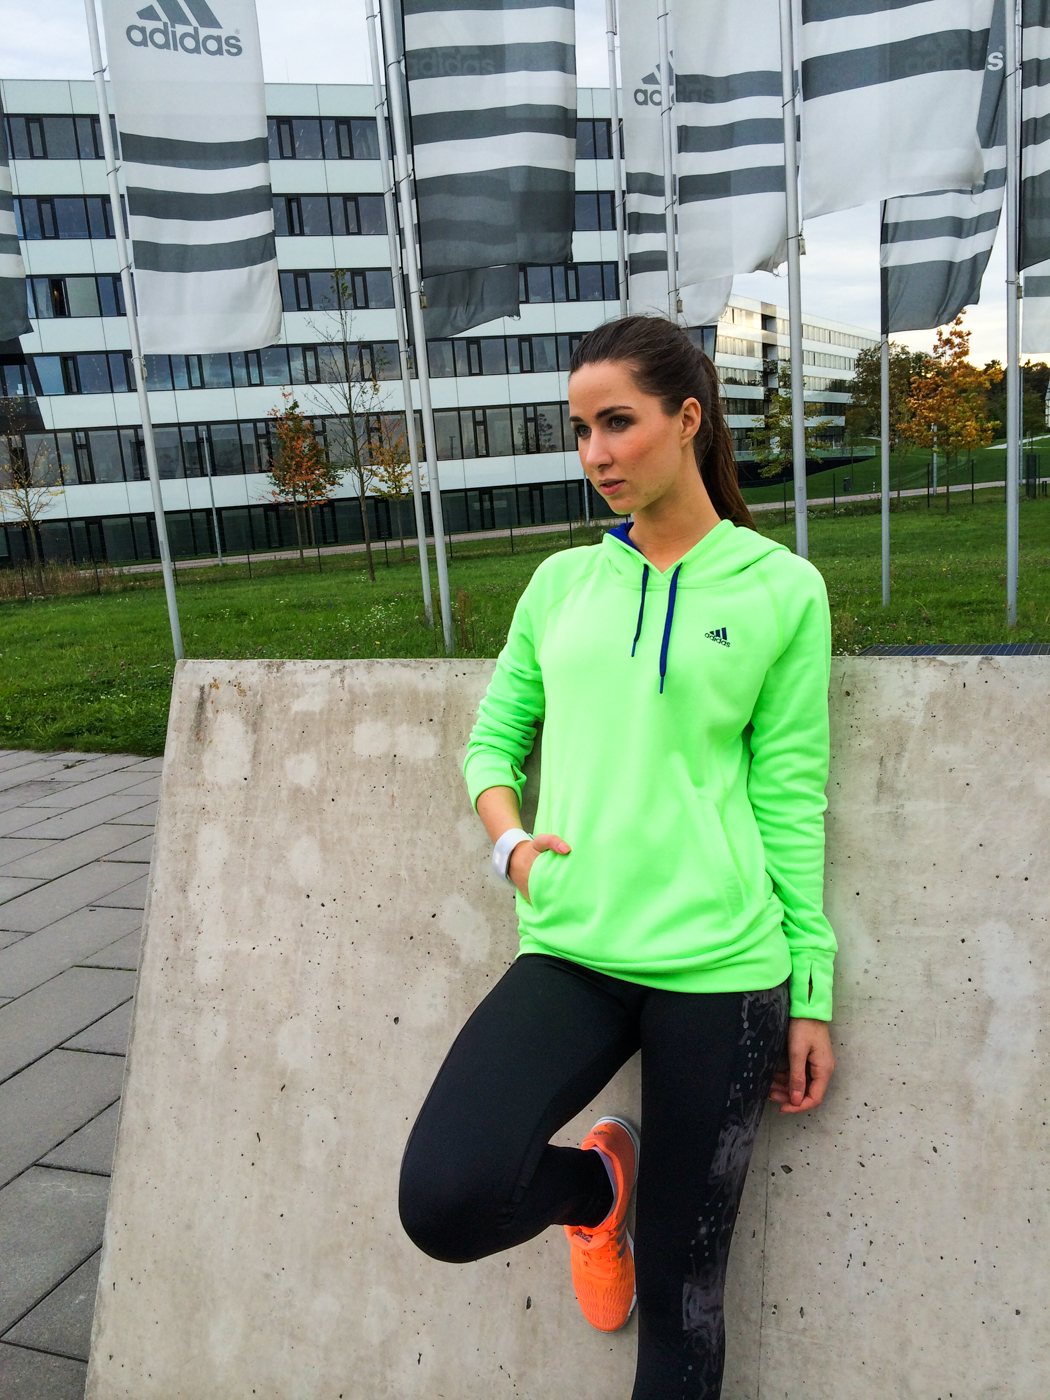 Adidas-MiCoach-Behind_the_scenes-Shooting-Fitnessmodel-15